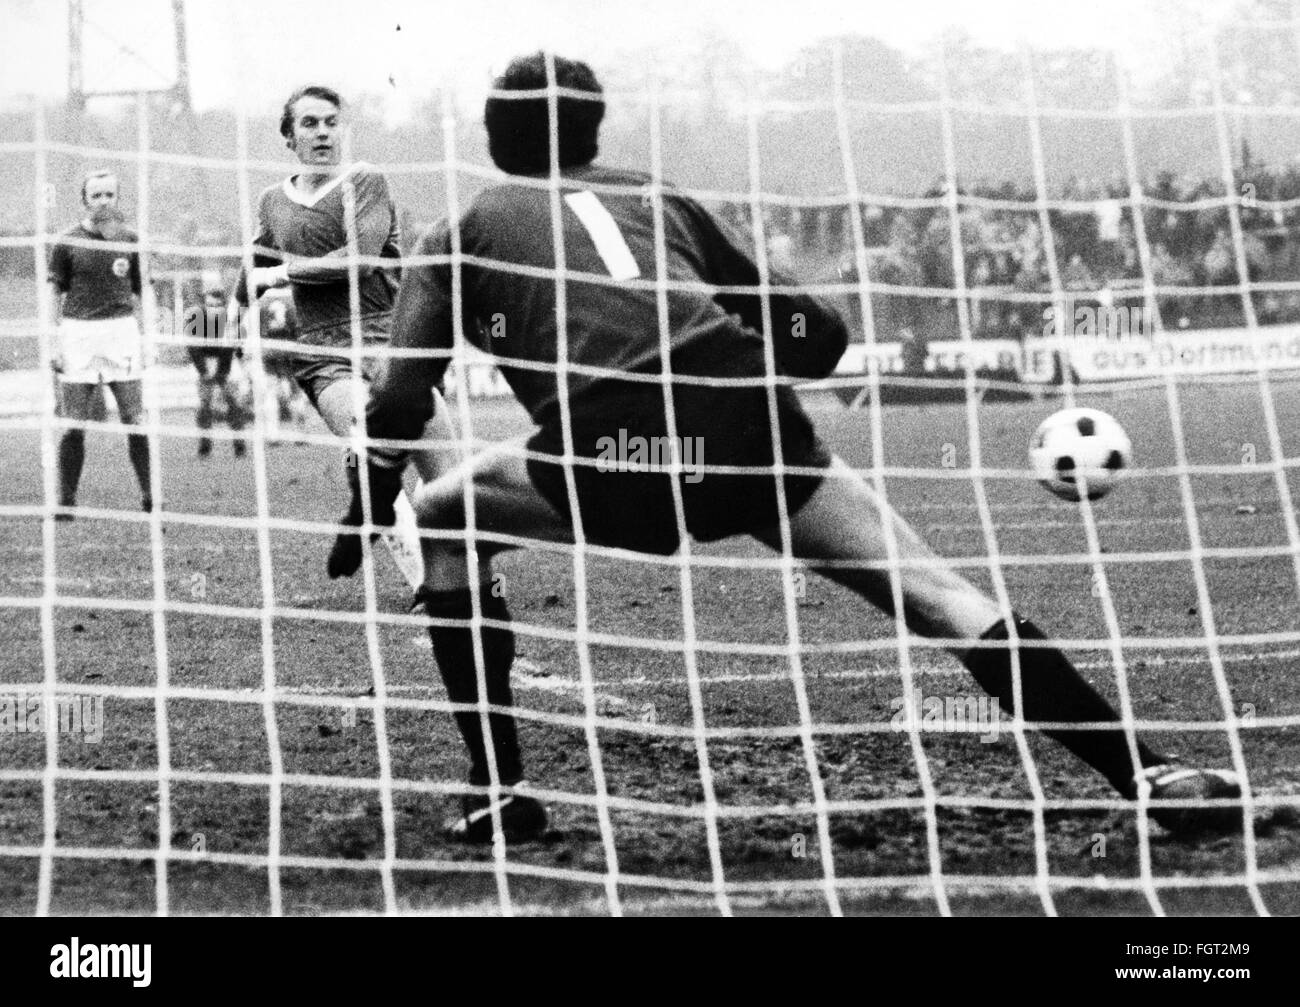 sports, football, games, Germany, national league, season 1970 / 1971, 13th match day, game Rot-Weiss Oberhausen - Stock Image